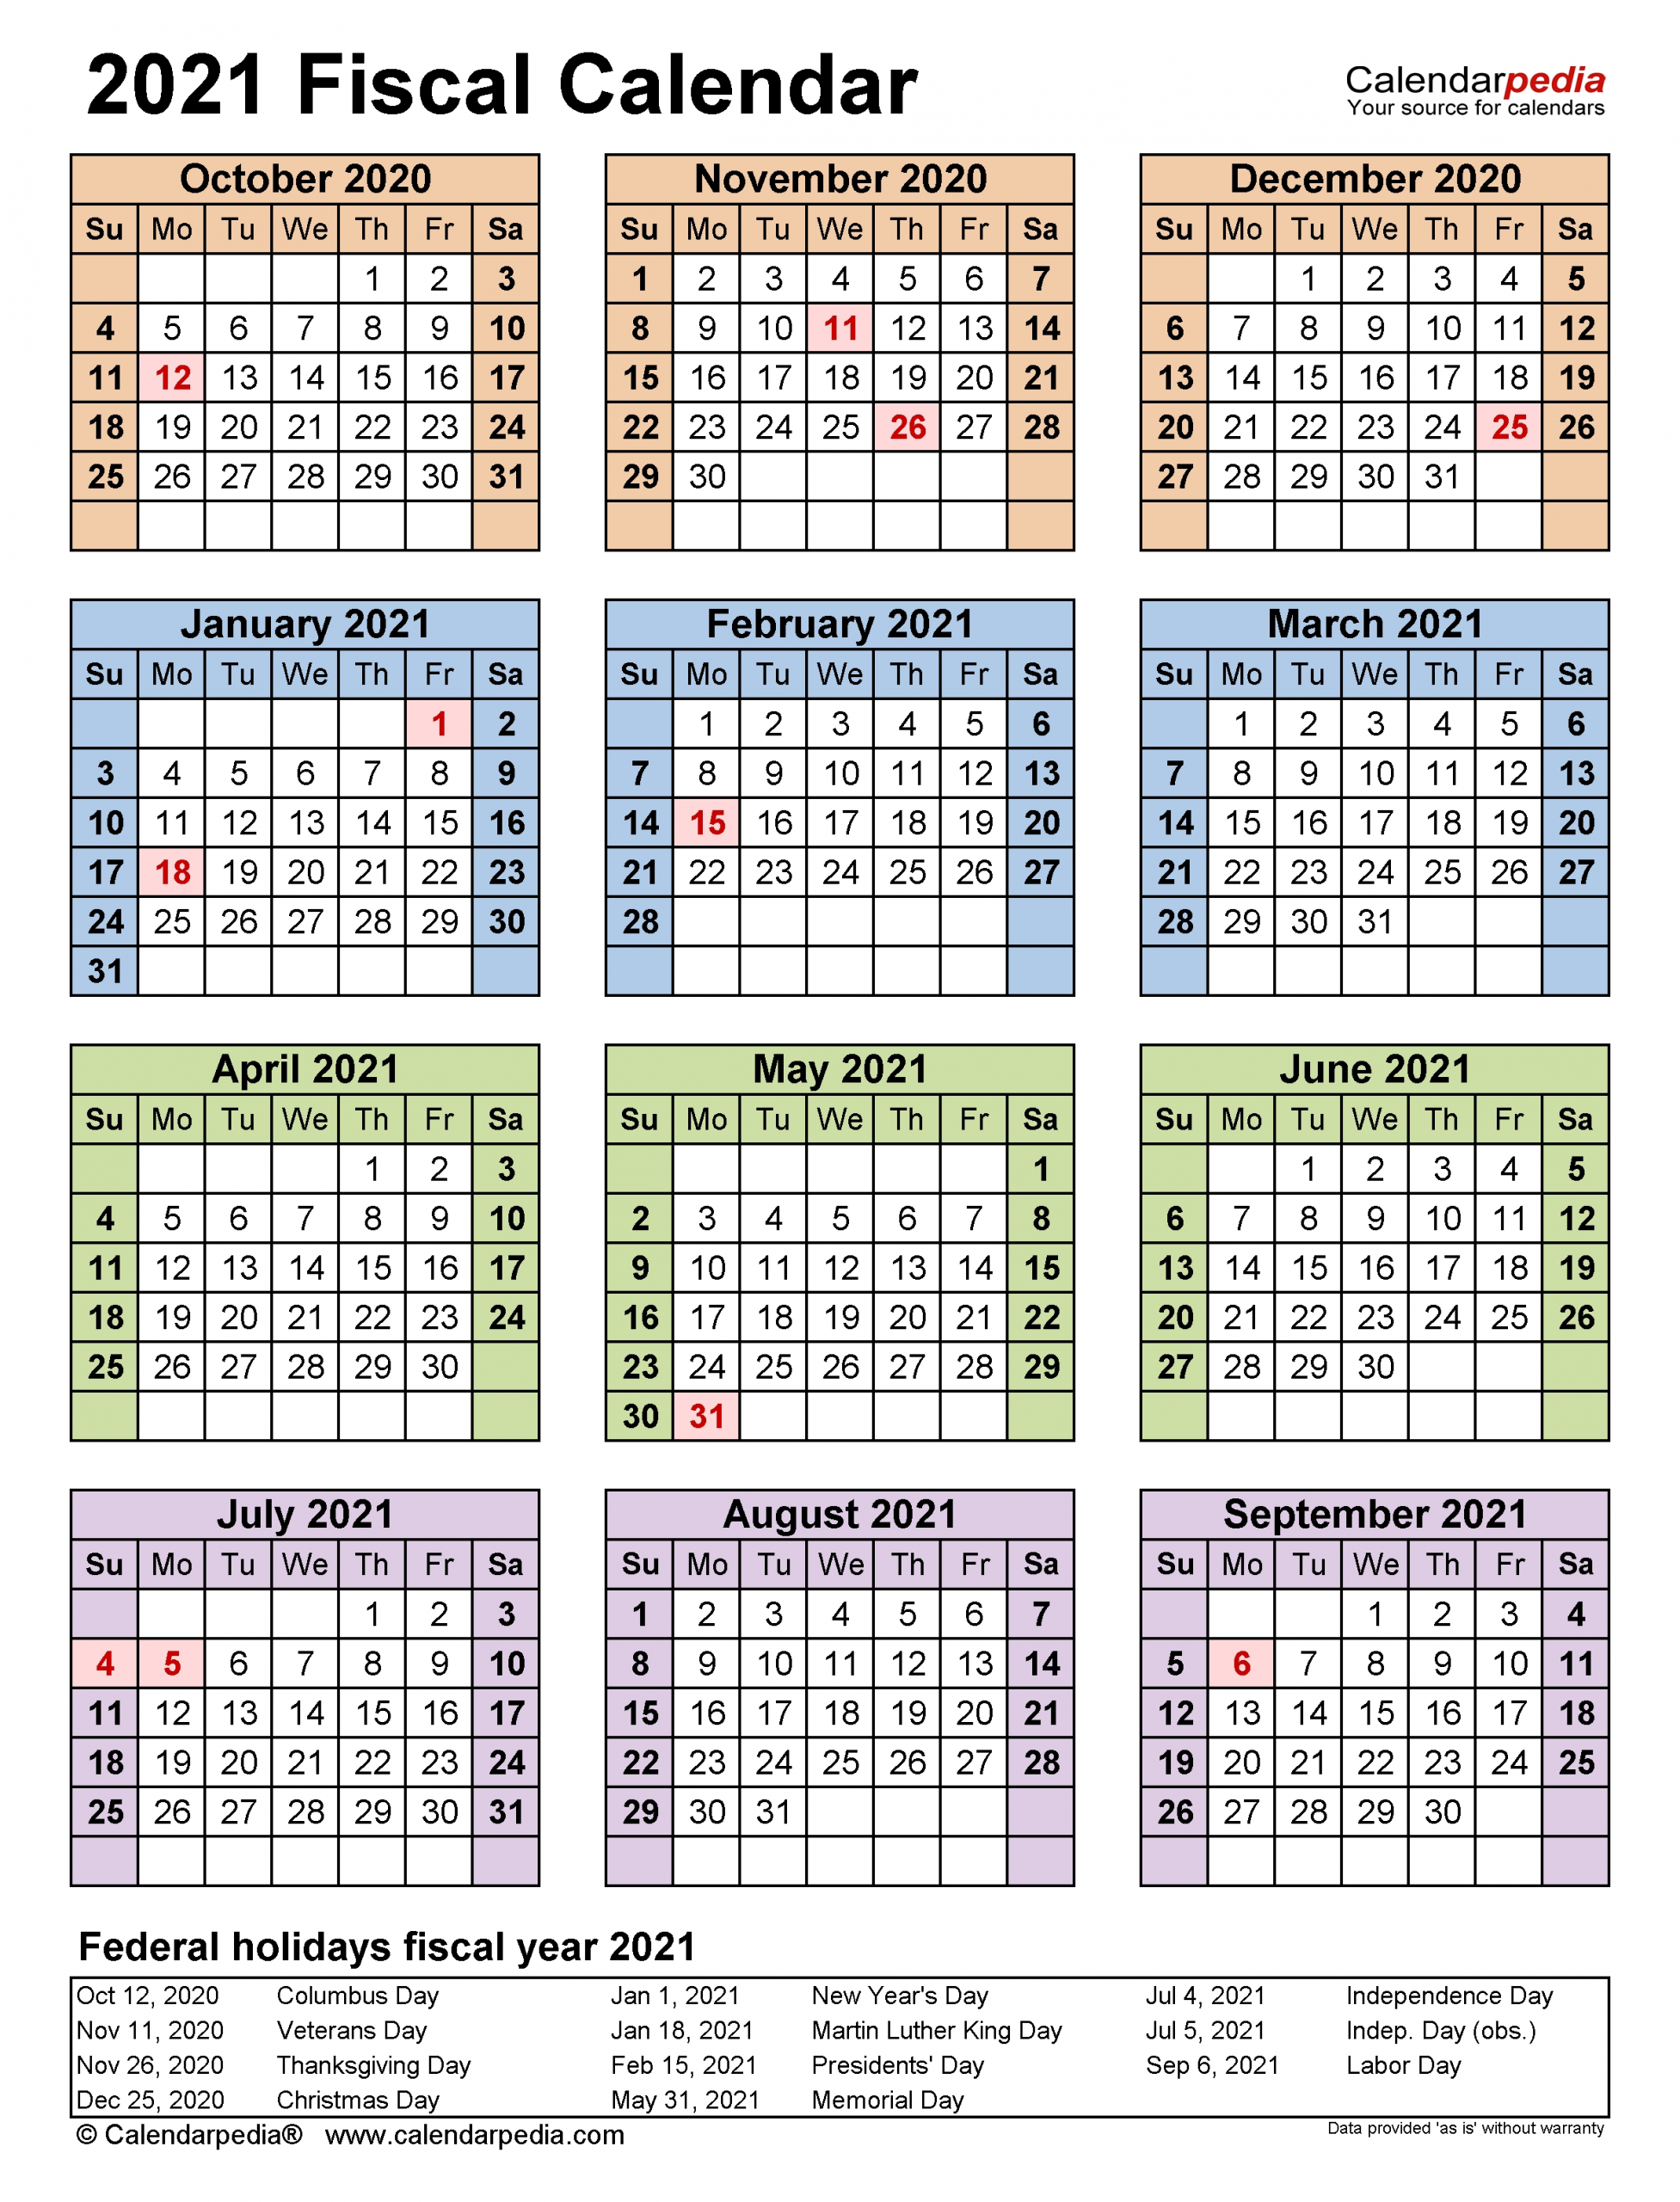 Fiscal Calendars 2021 - Free Printable Excel Templates-2021 Calnder By Week No Excel